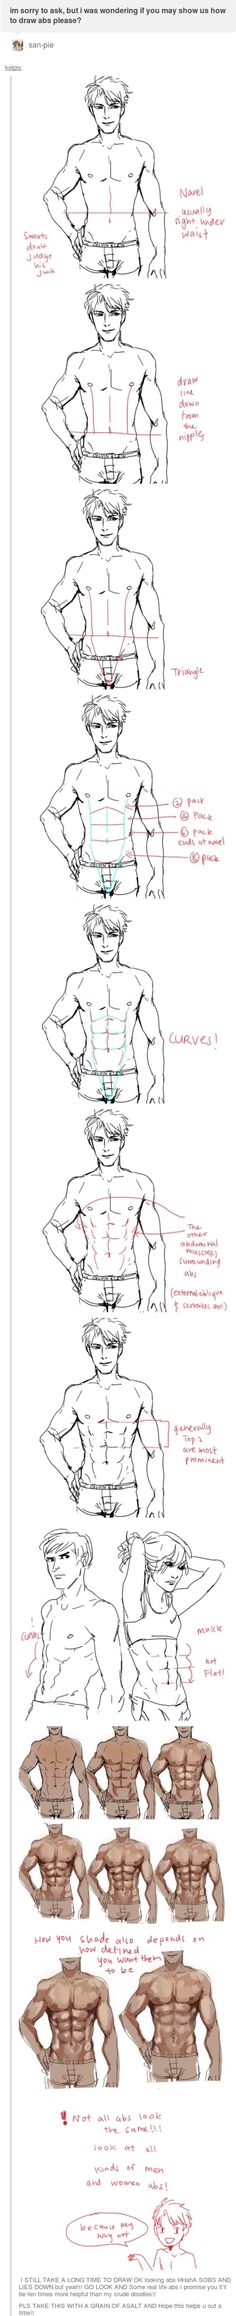 how to draw abs. http://kelpls.tumblr.com/post/72186004376/im-sorry-to-ask-but-i-was-wondering-if-you-may-show-us